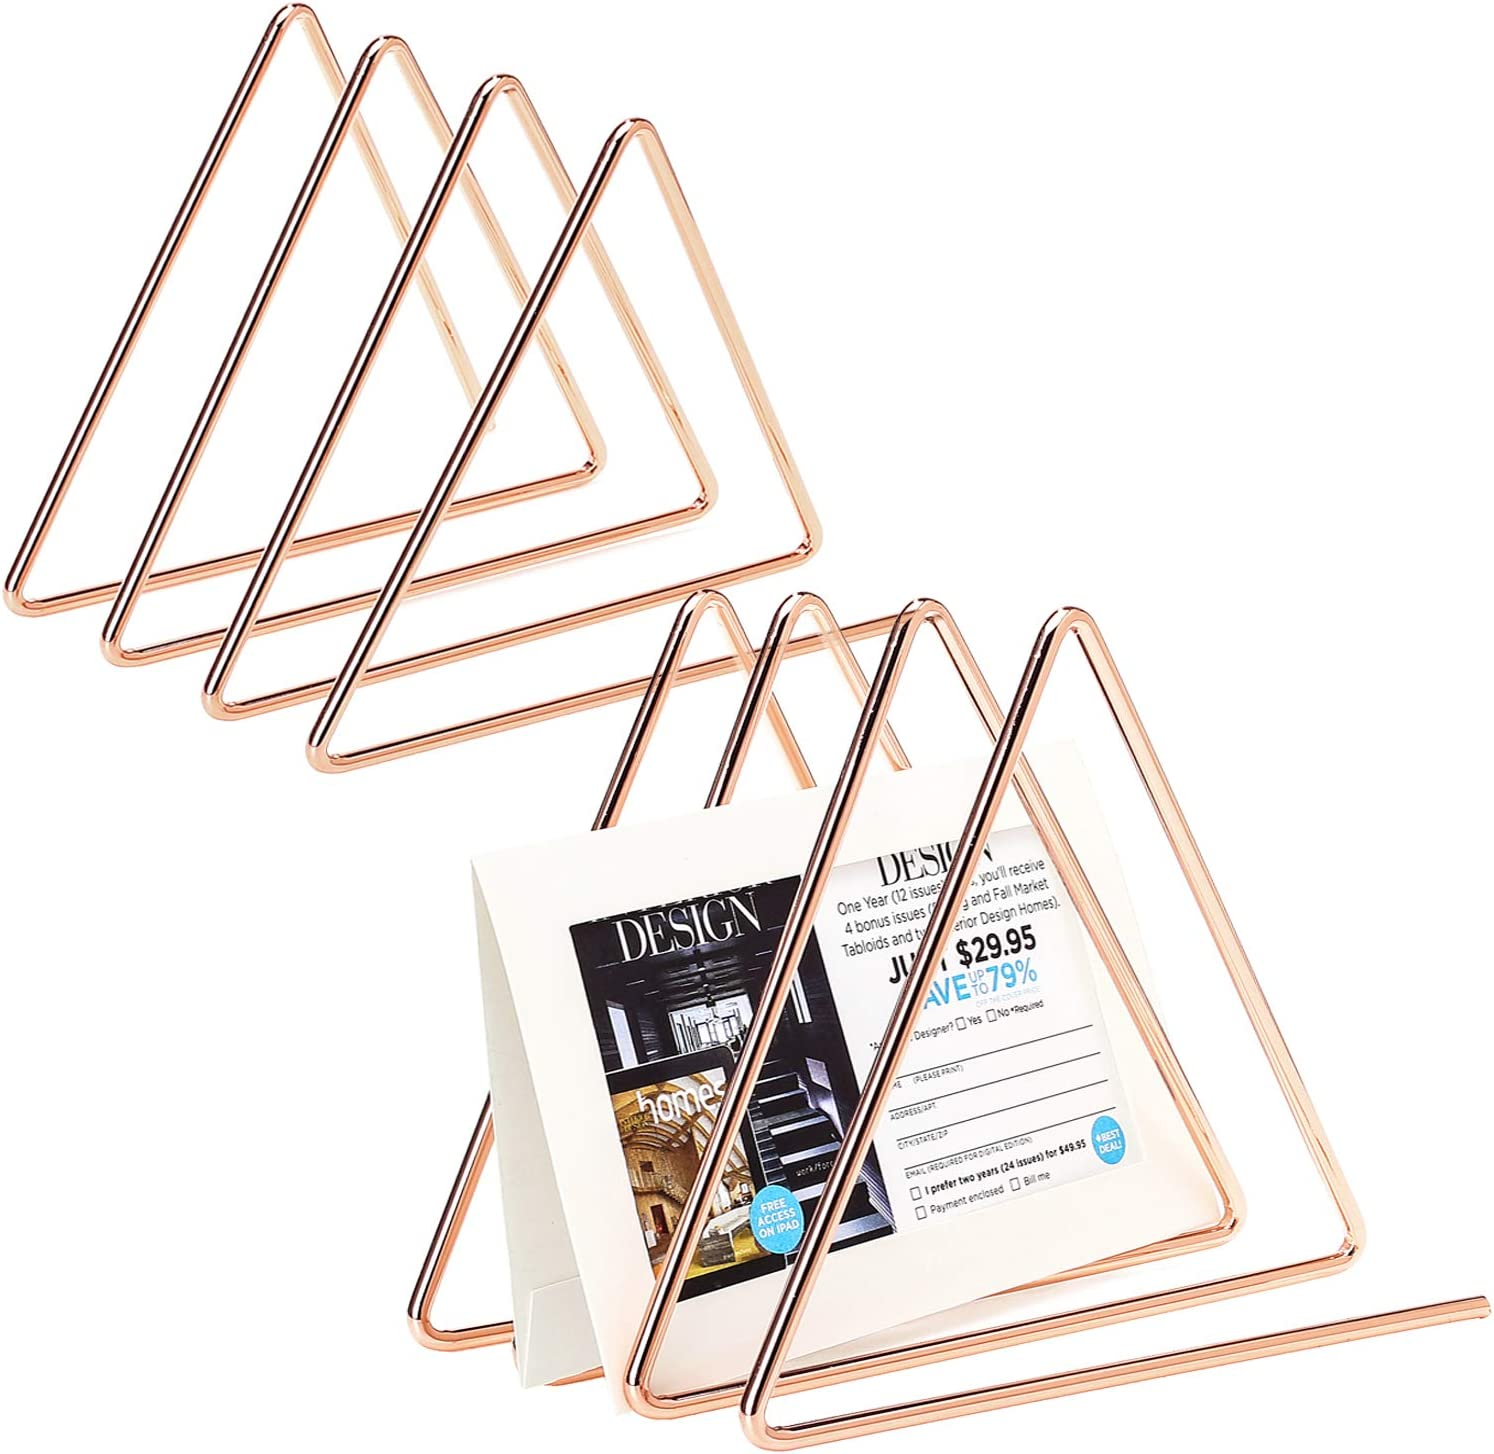 GoldOrcle 2 Pack Metal Wire File Organizer Desk Organizer, 3 Slot Triangle Magazine File Holder for Office Home Decor, Rose Gold